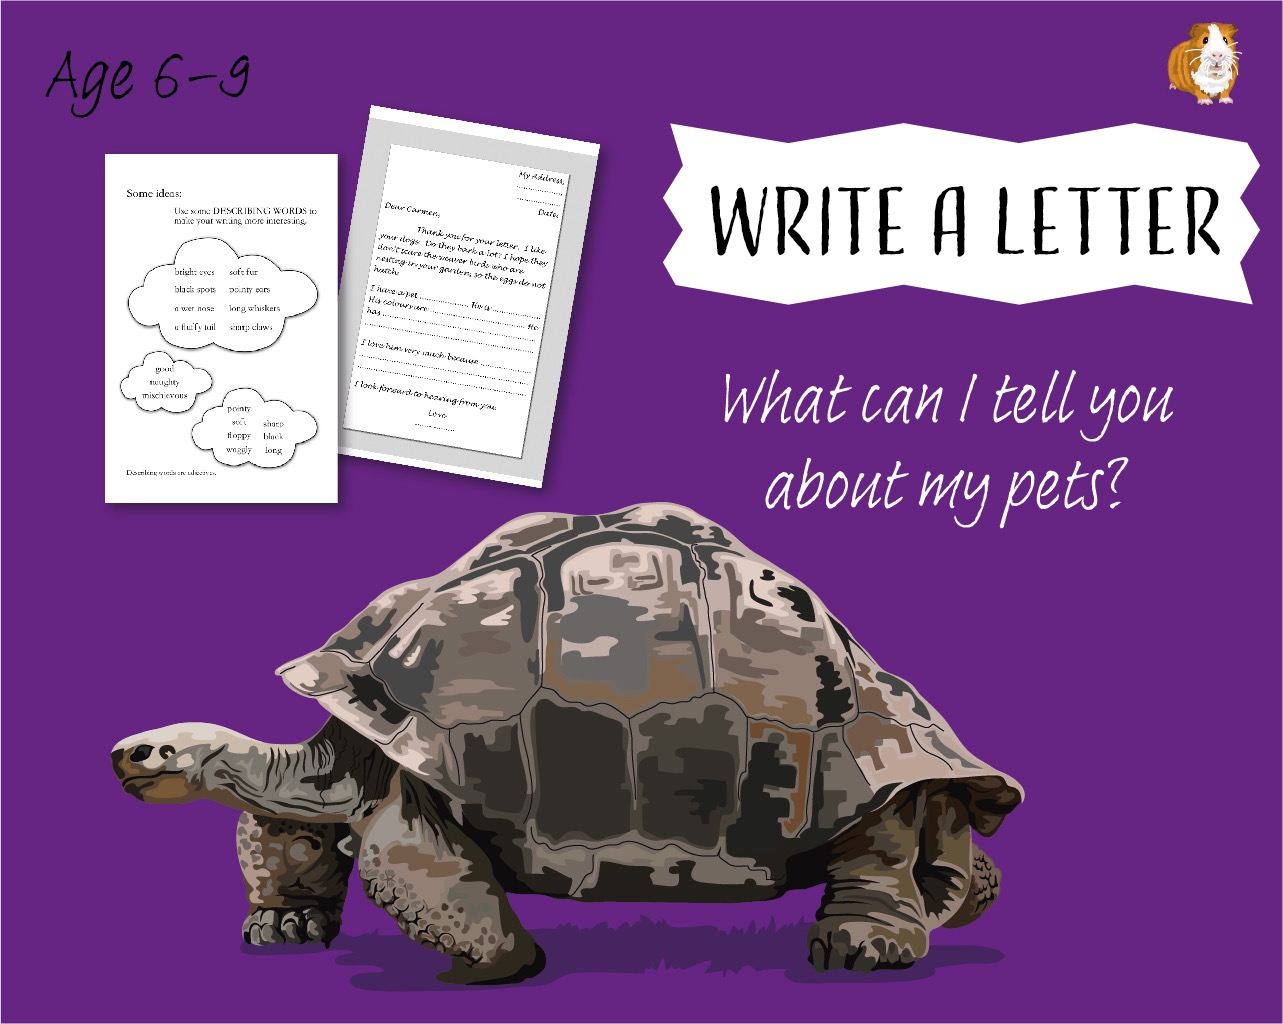 Write A Letter: What Can I Tell You About My Pets? (6-9 years)